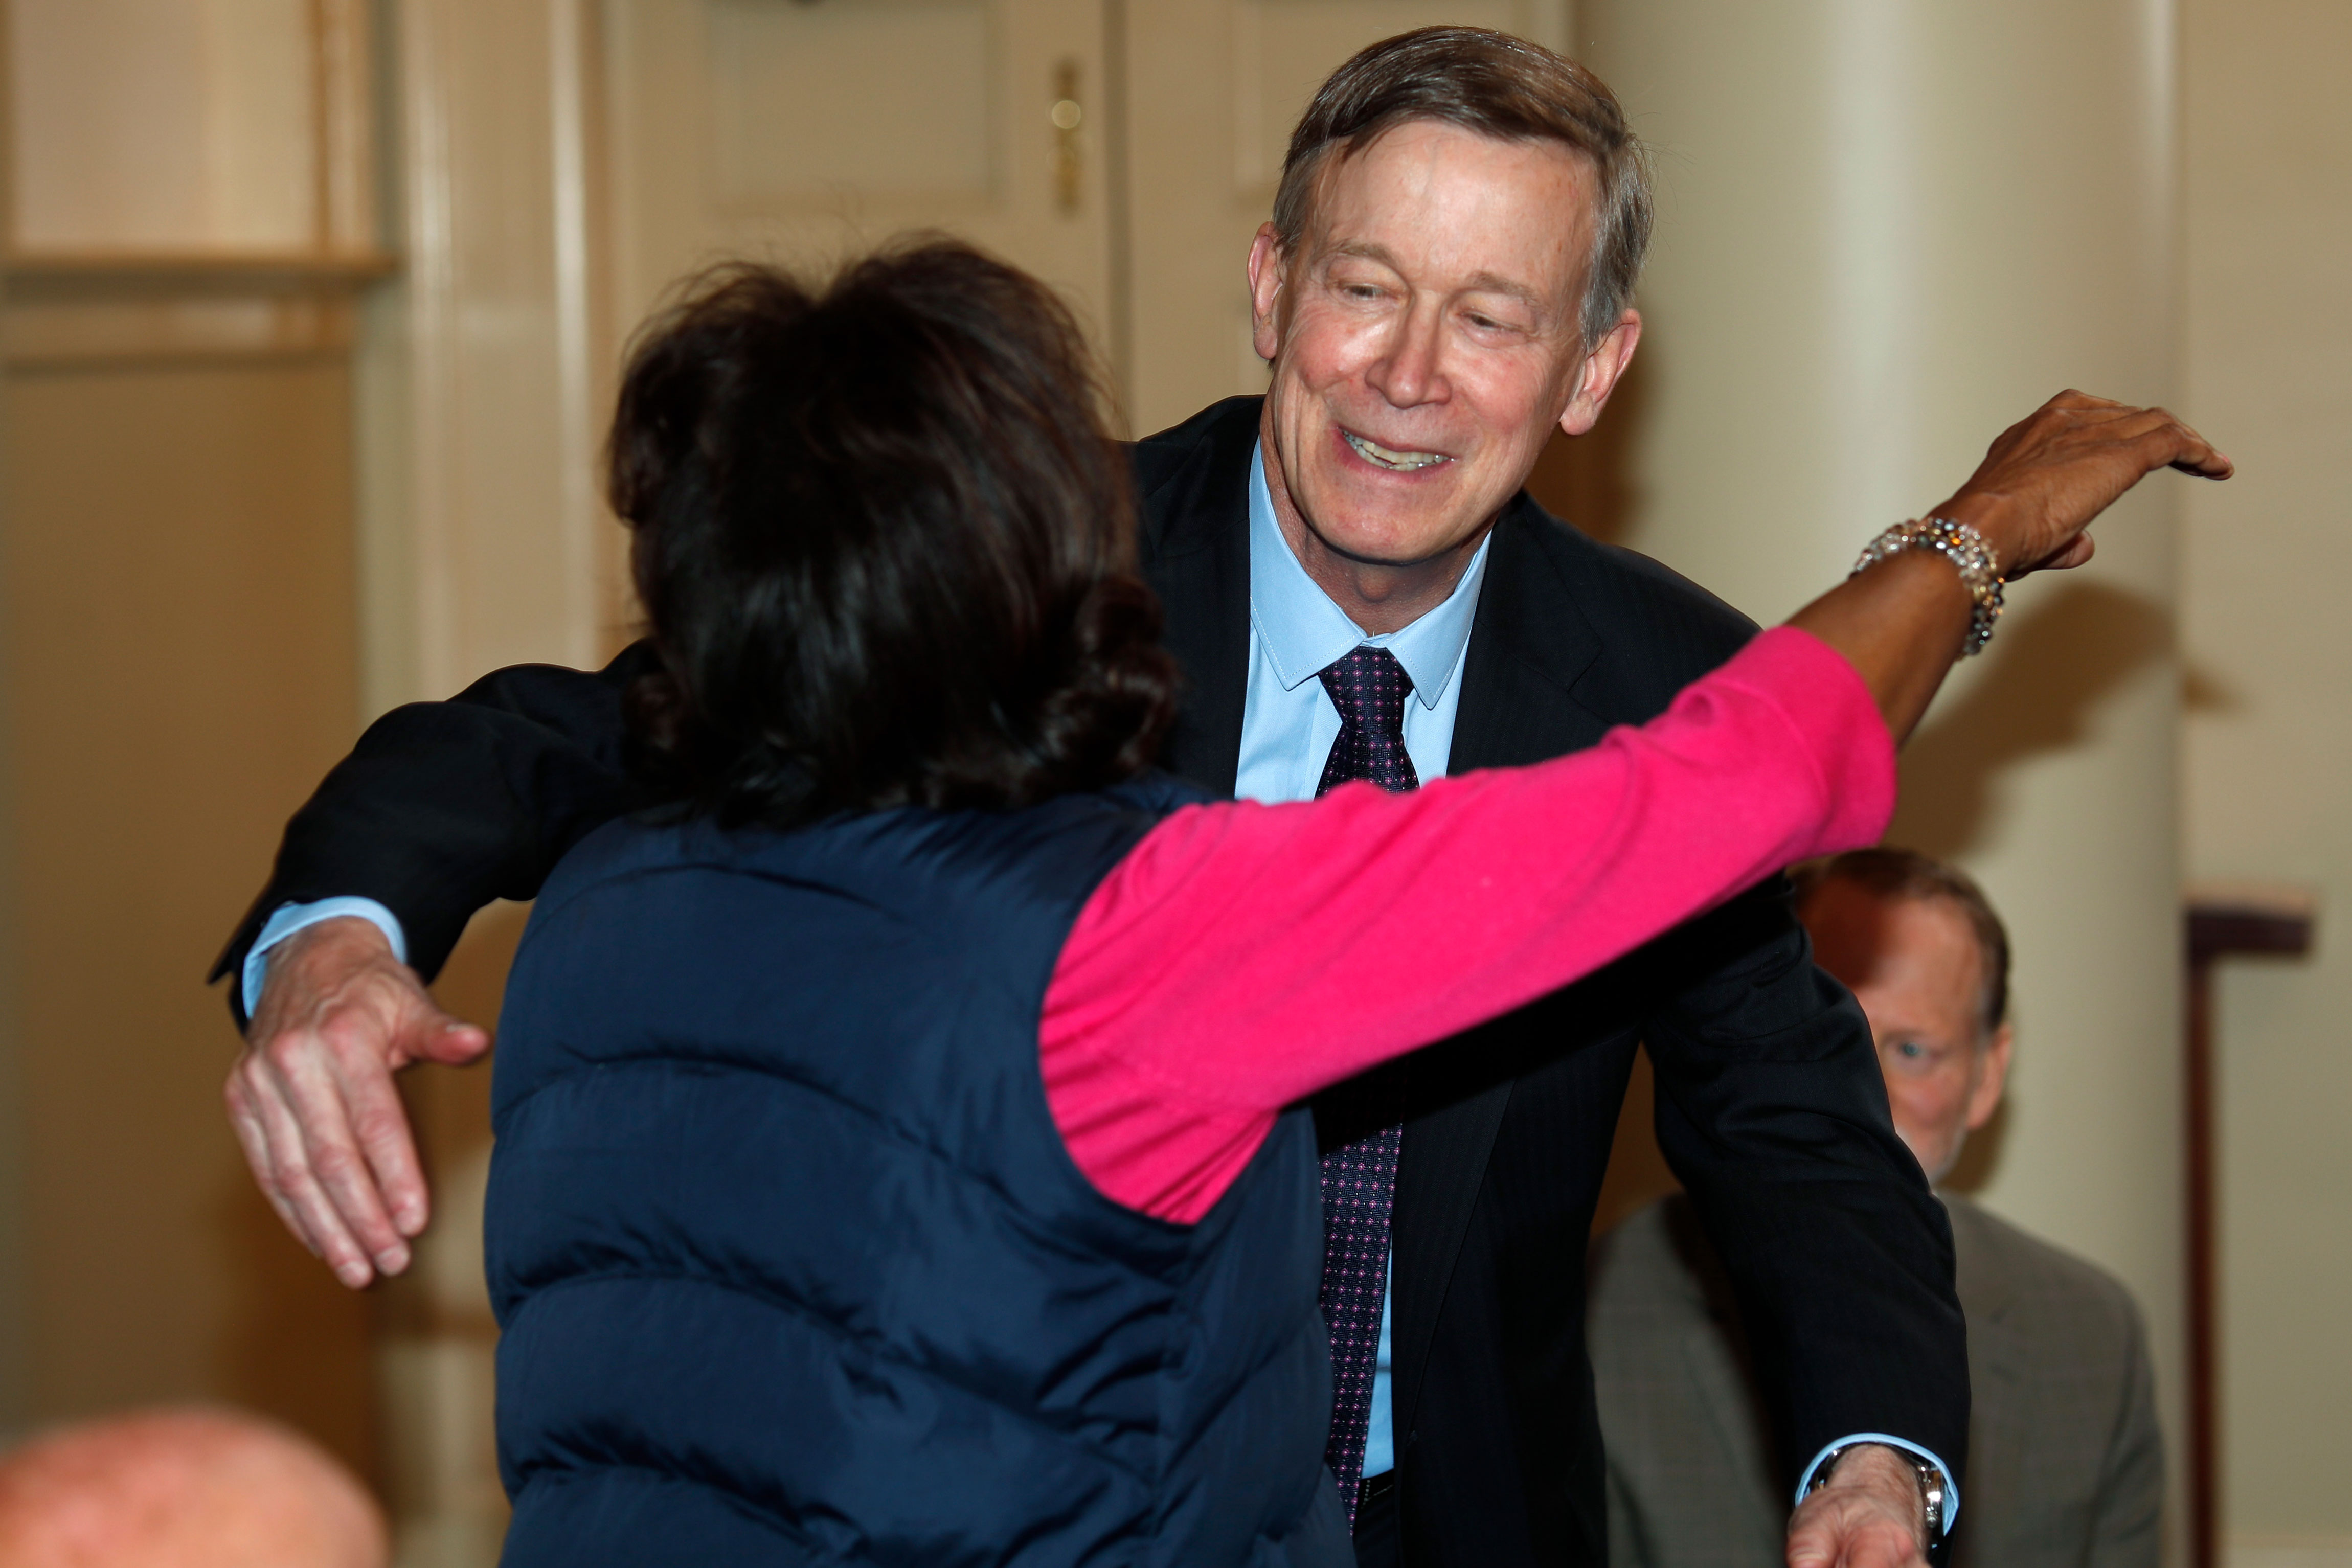 Photo: Election 2020 | Hickenlooper Meets With Colo Shooting Victims - AP